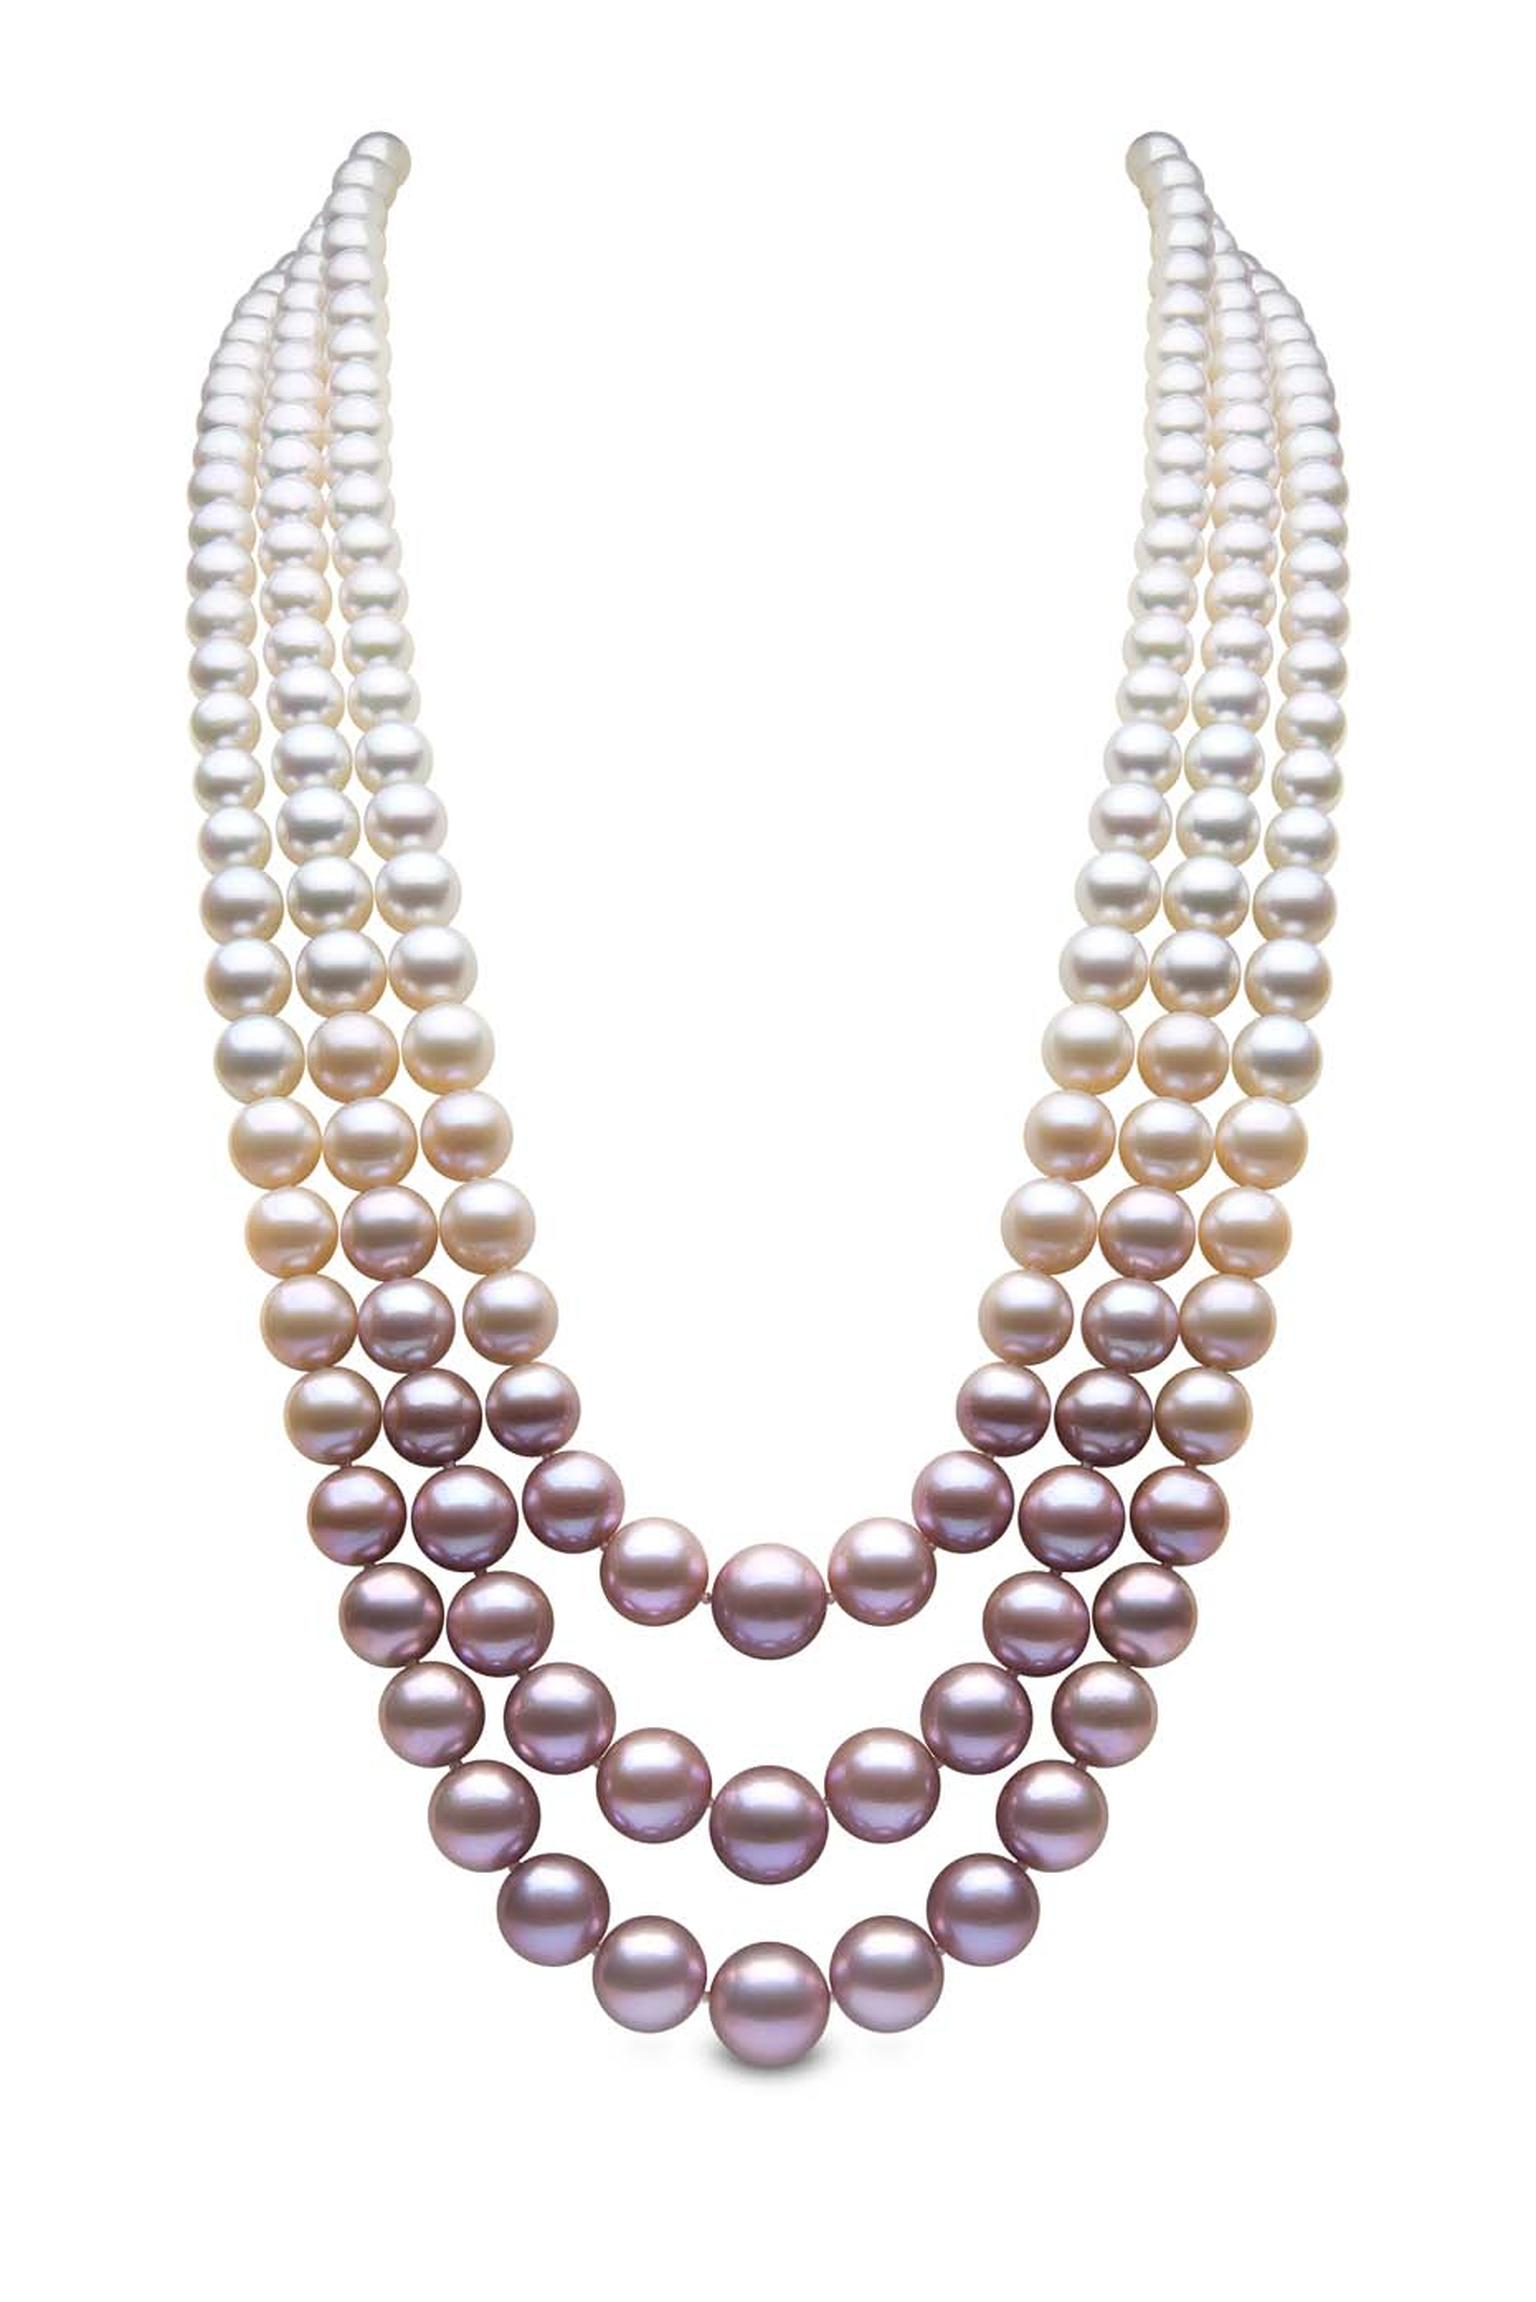 1536x2302 Blossom Rose Gold South Sea, Akoya And Freshwater Pearl Necklace